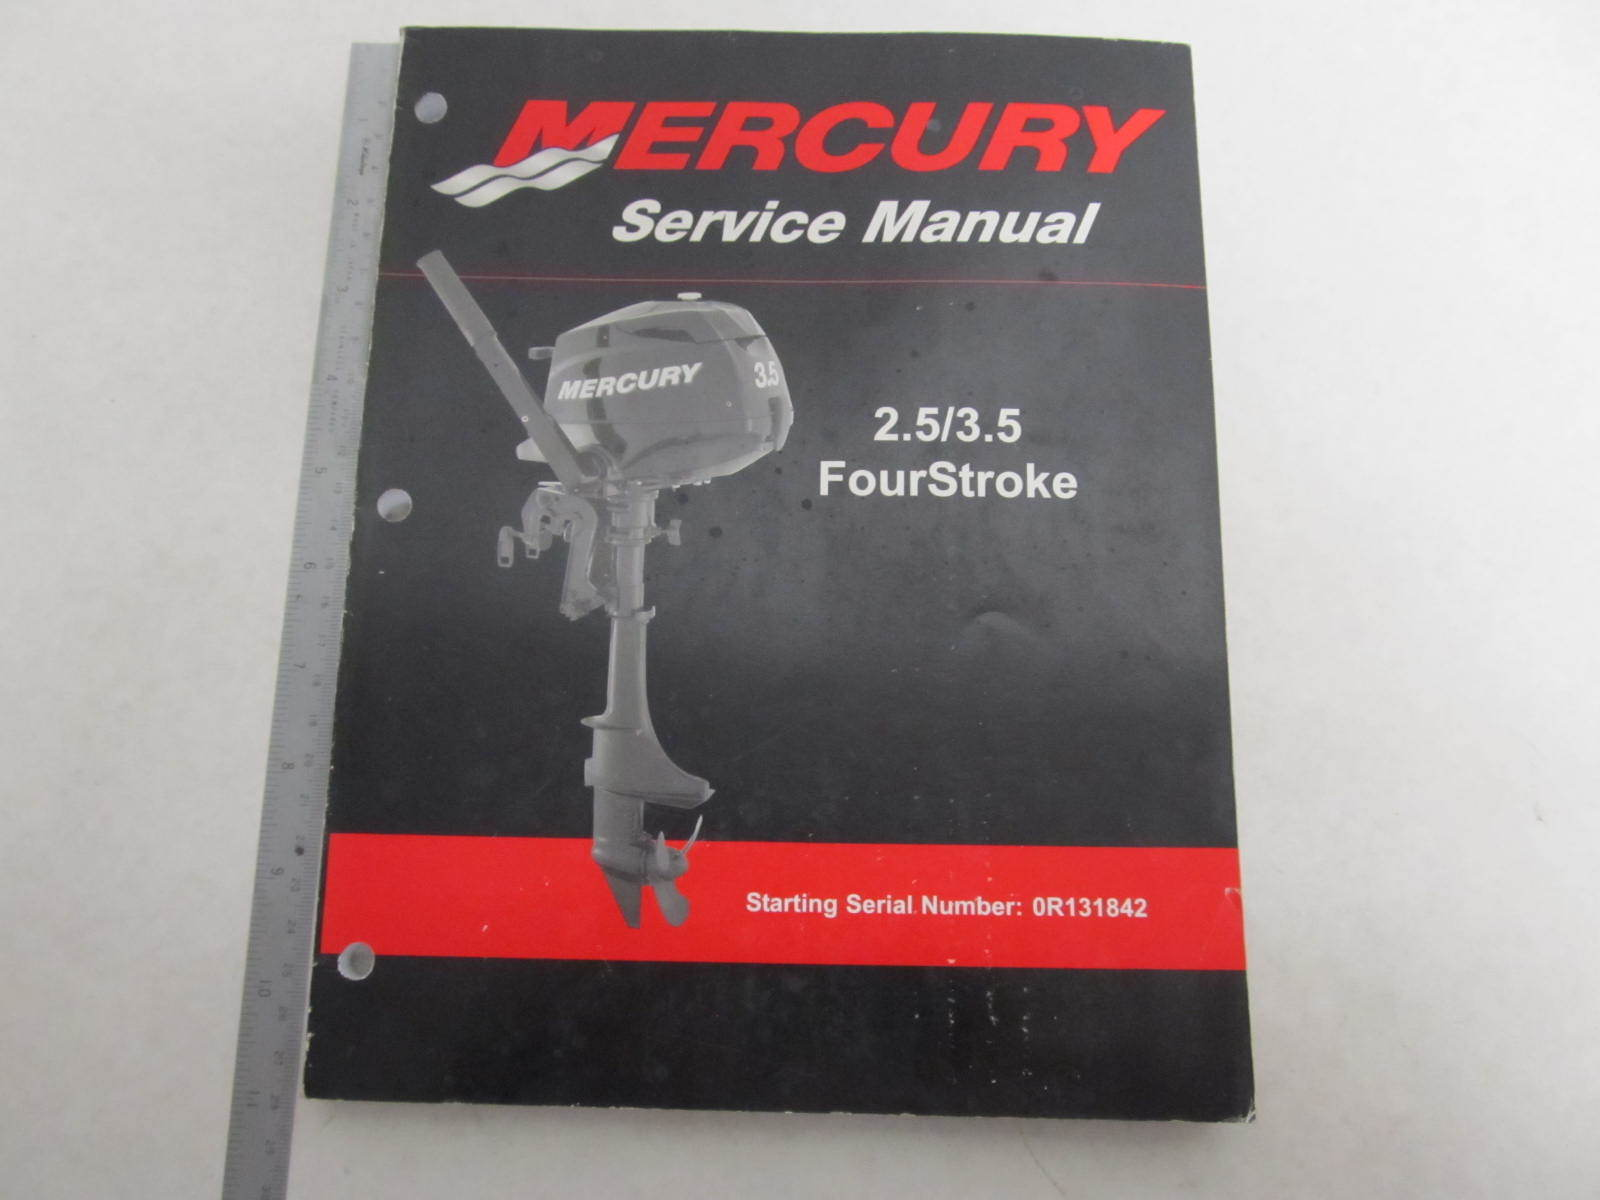 90 899925 mercury outboard service manual 2 5   3 5 hp 4 1986 mercury 35 hp outboard service manual 1985 mercury 35 hp outboard service manual